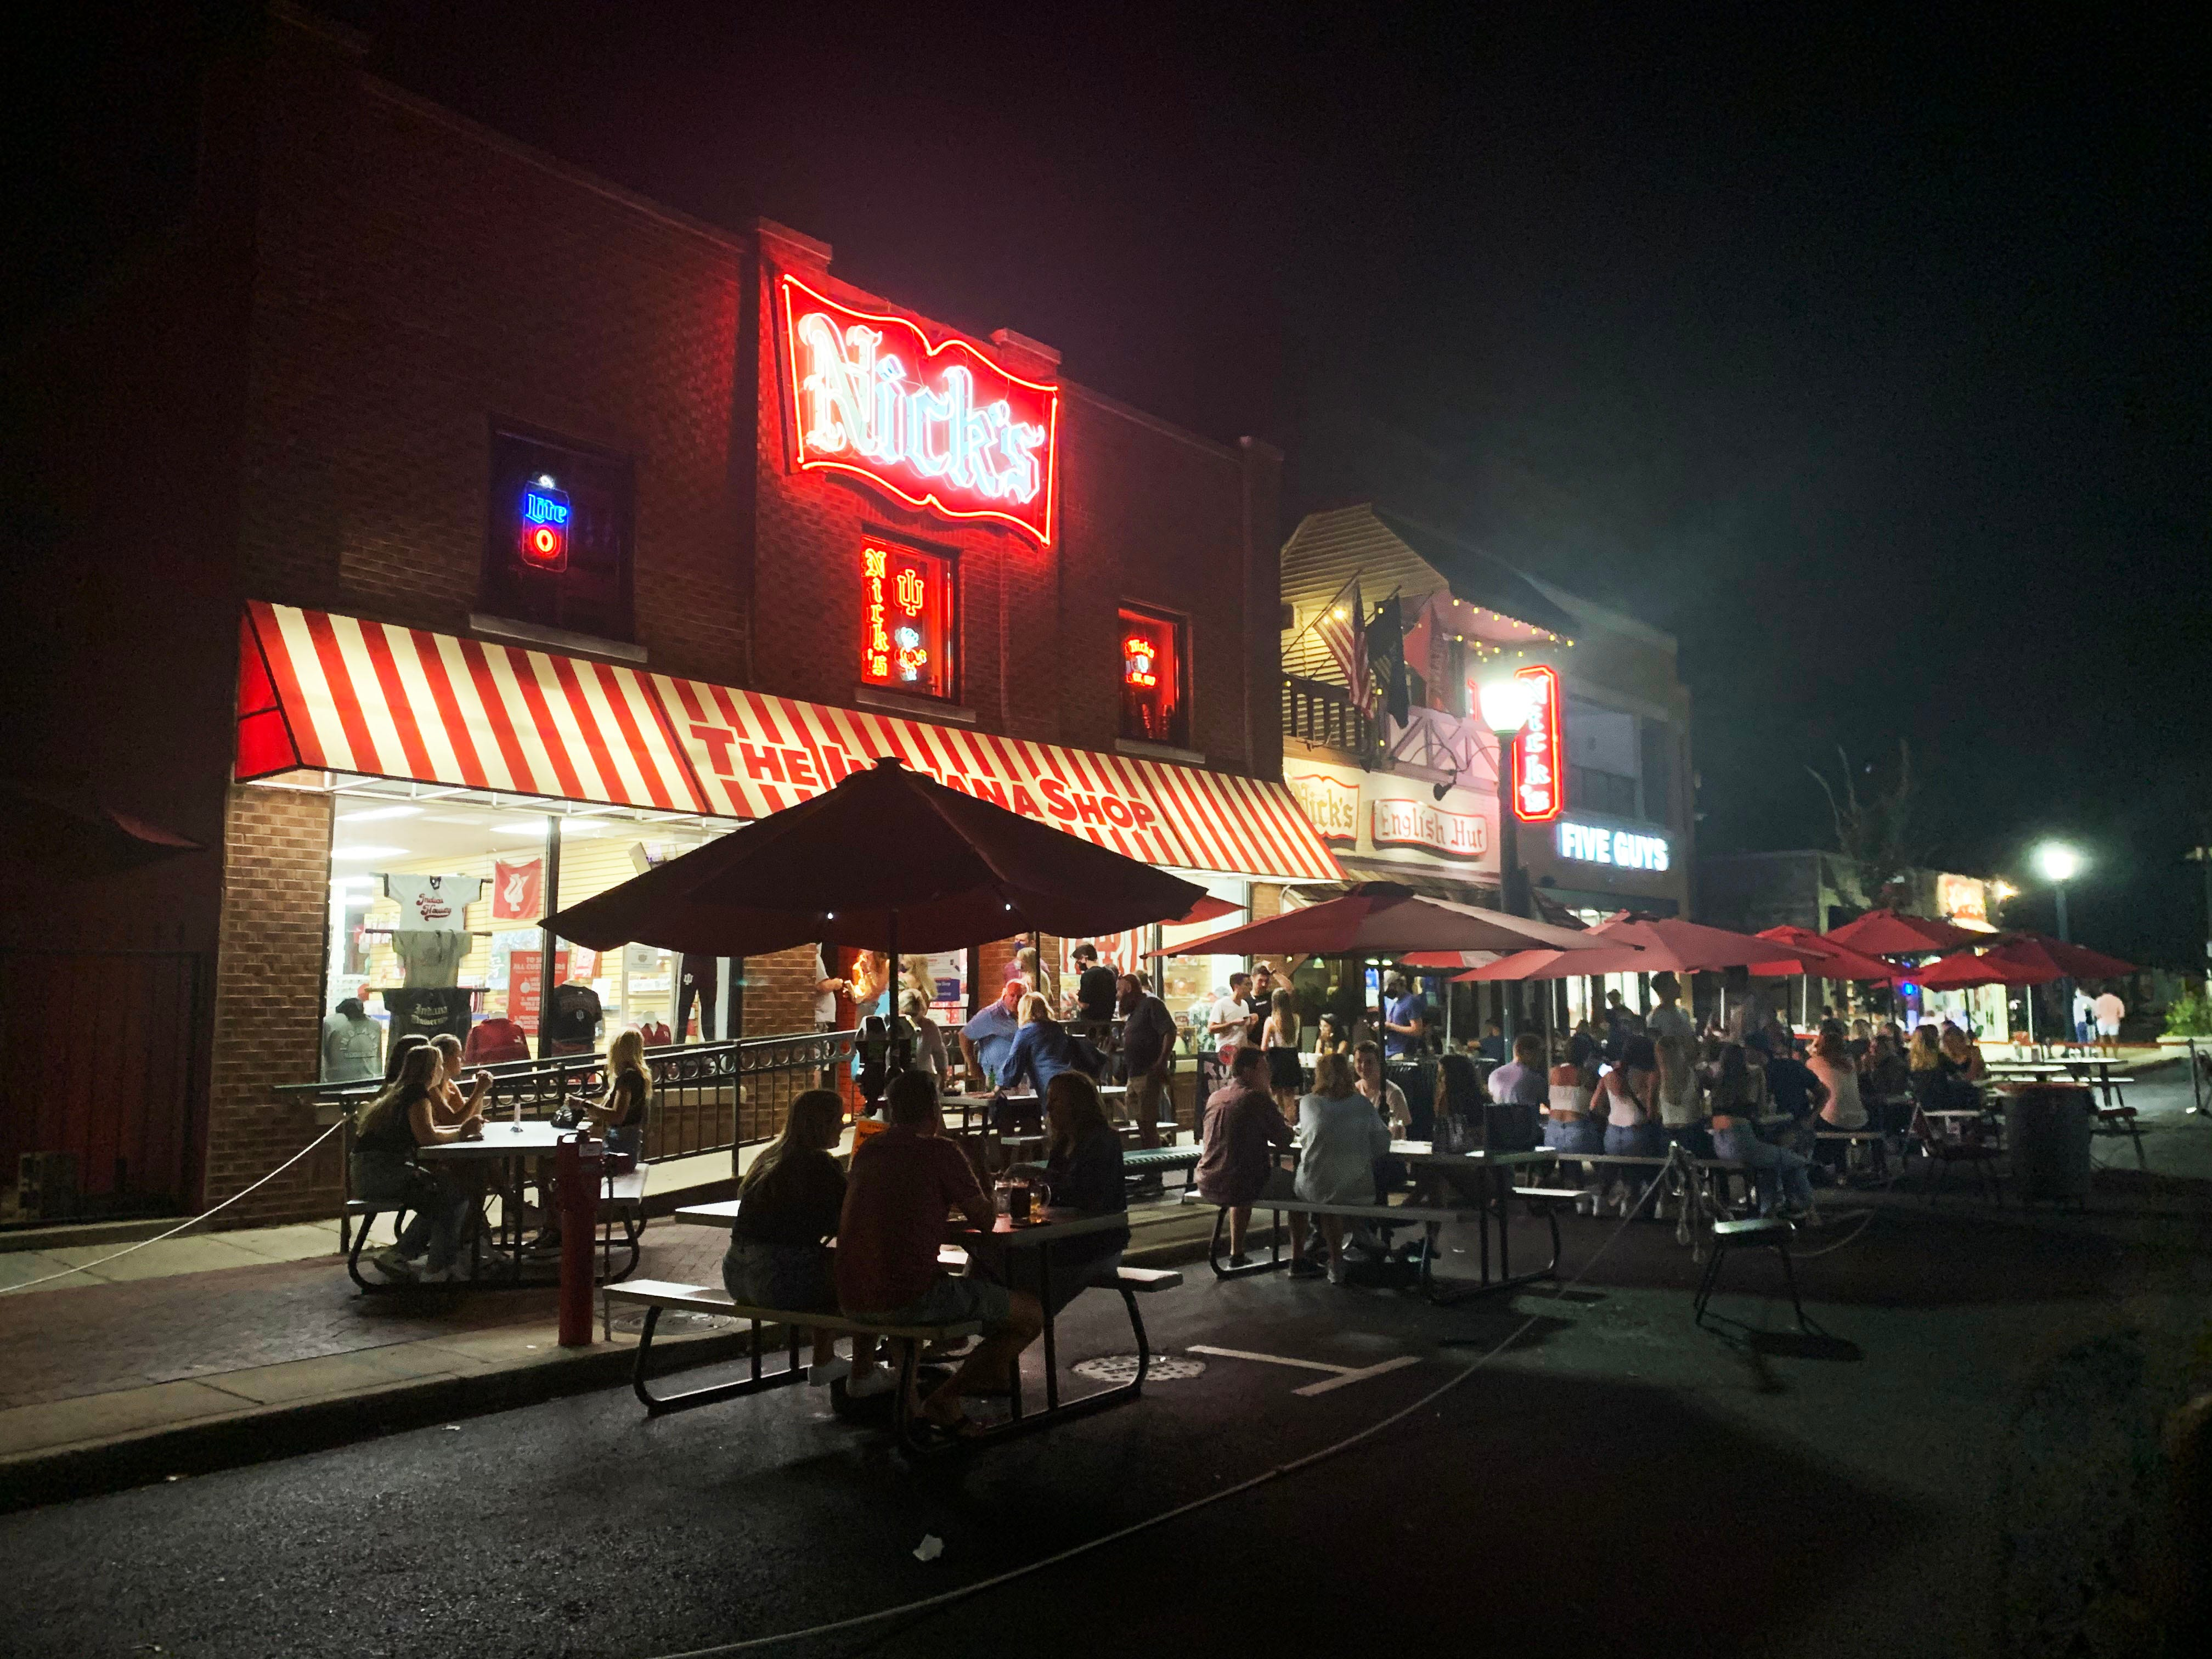 People congregate Thursday outside Nick's bar in Bloomington, near the Indiana University campus.